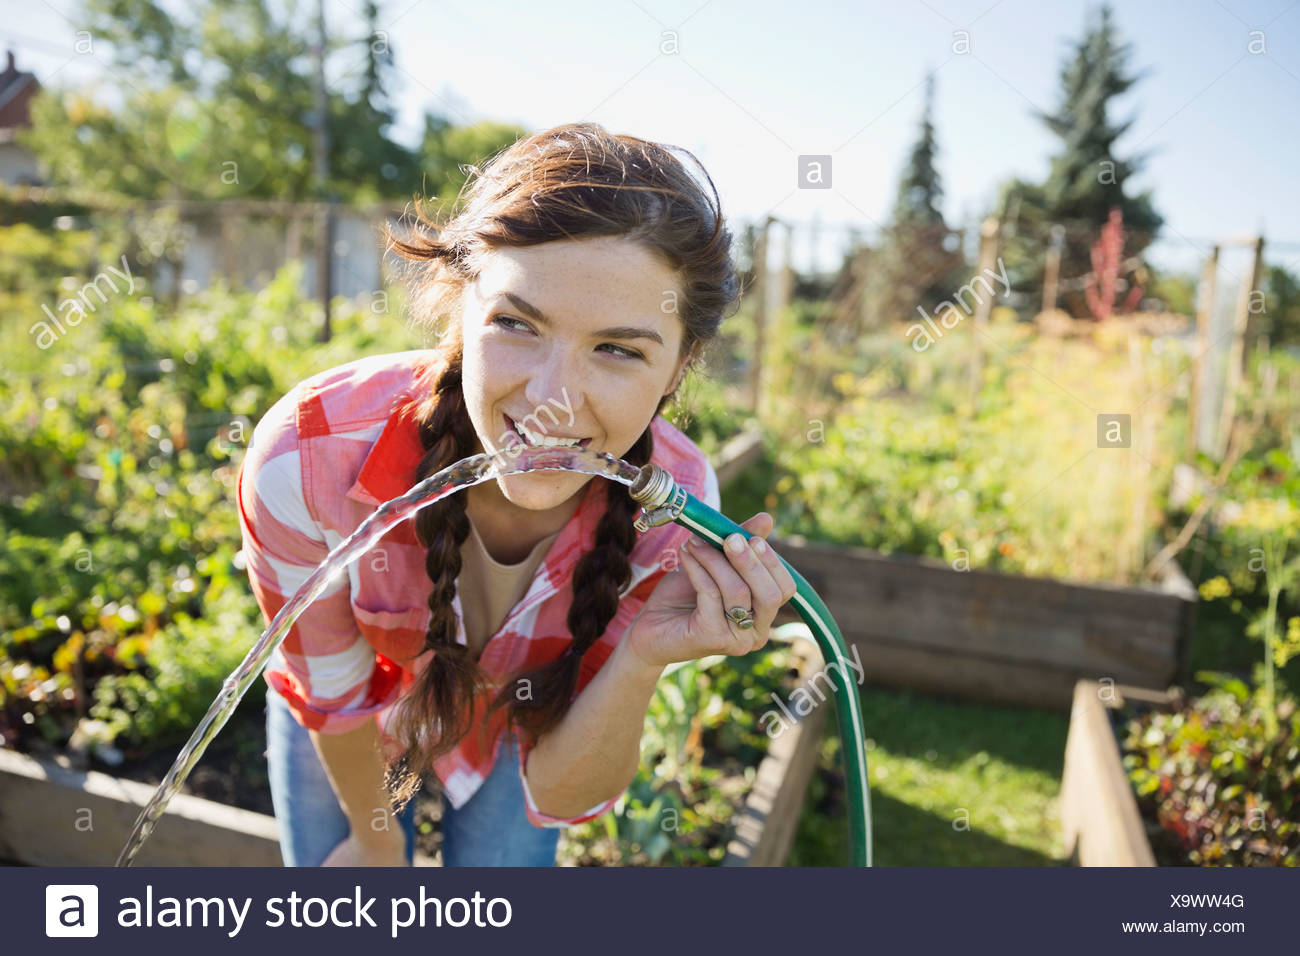 Woman drinking water from garden hose - Stock Image